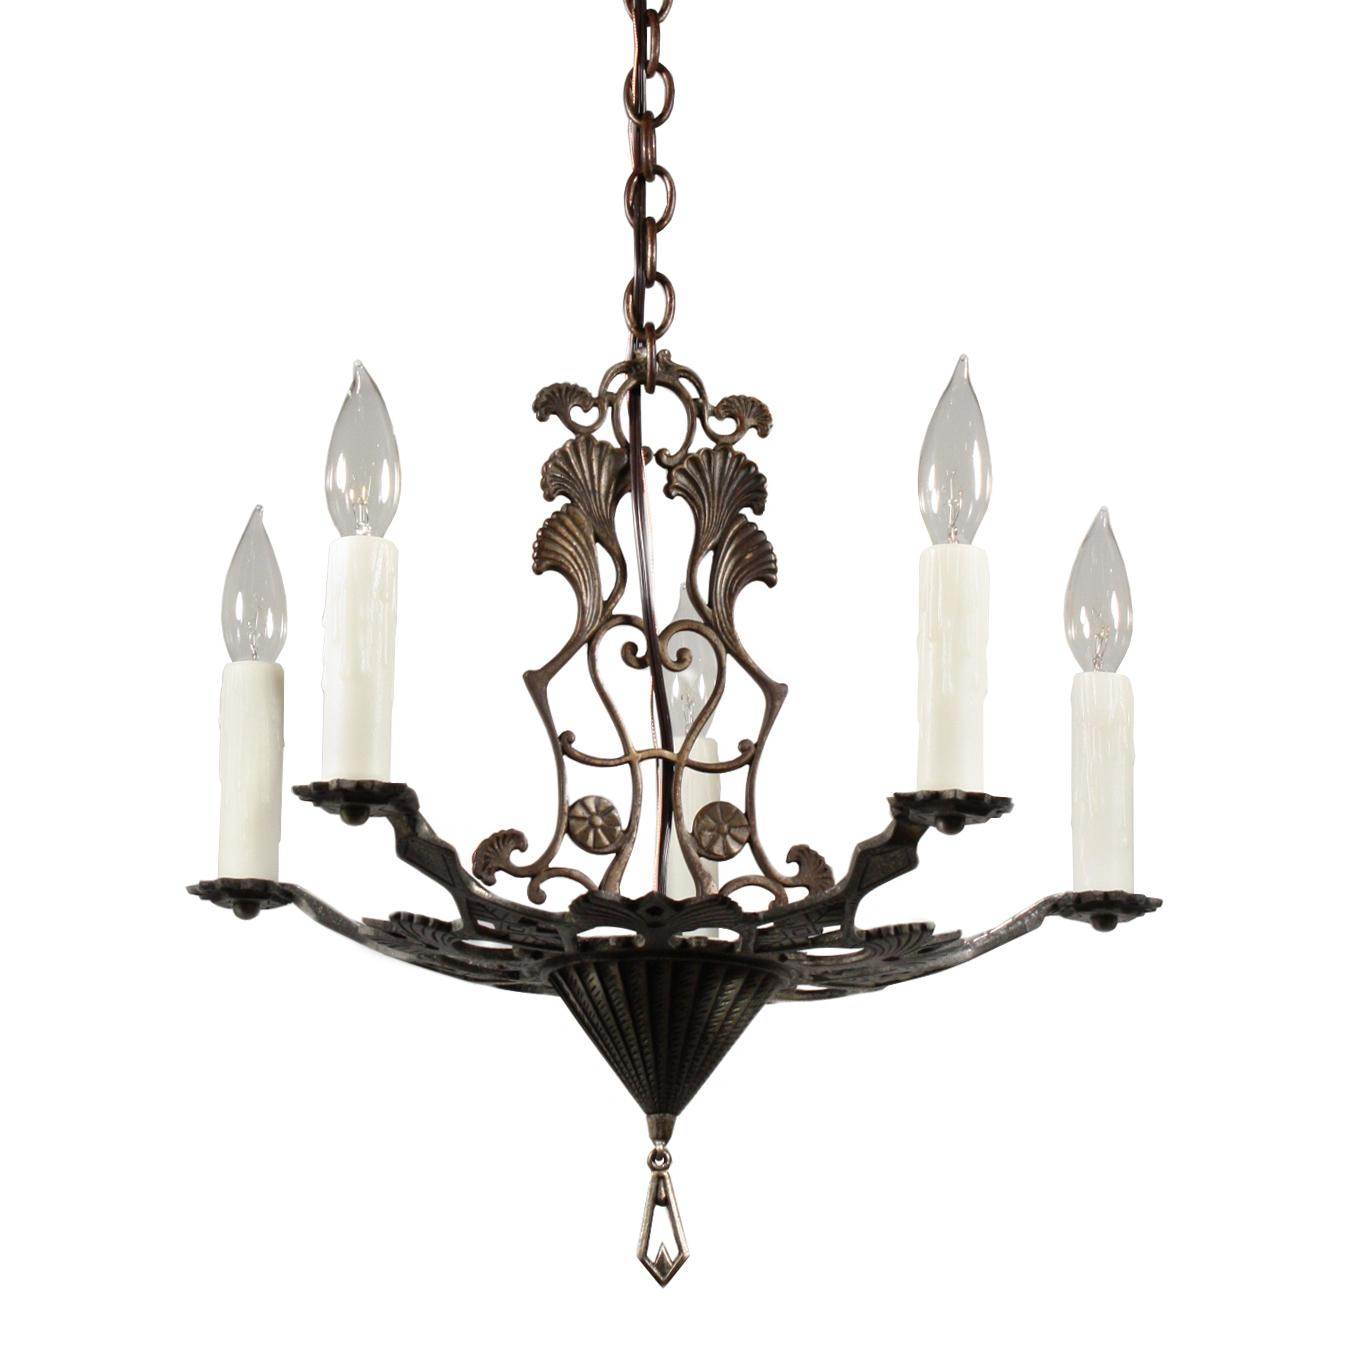 Fabulous Antique Art Deco Chandelier with Gingko Leaves, c.1930